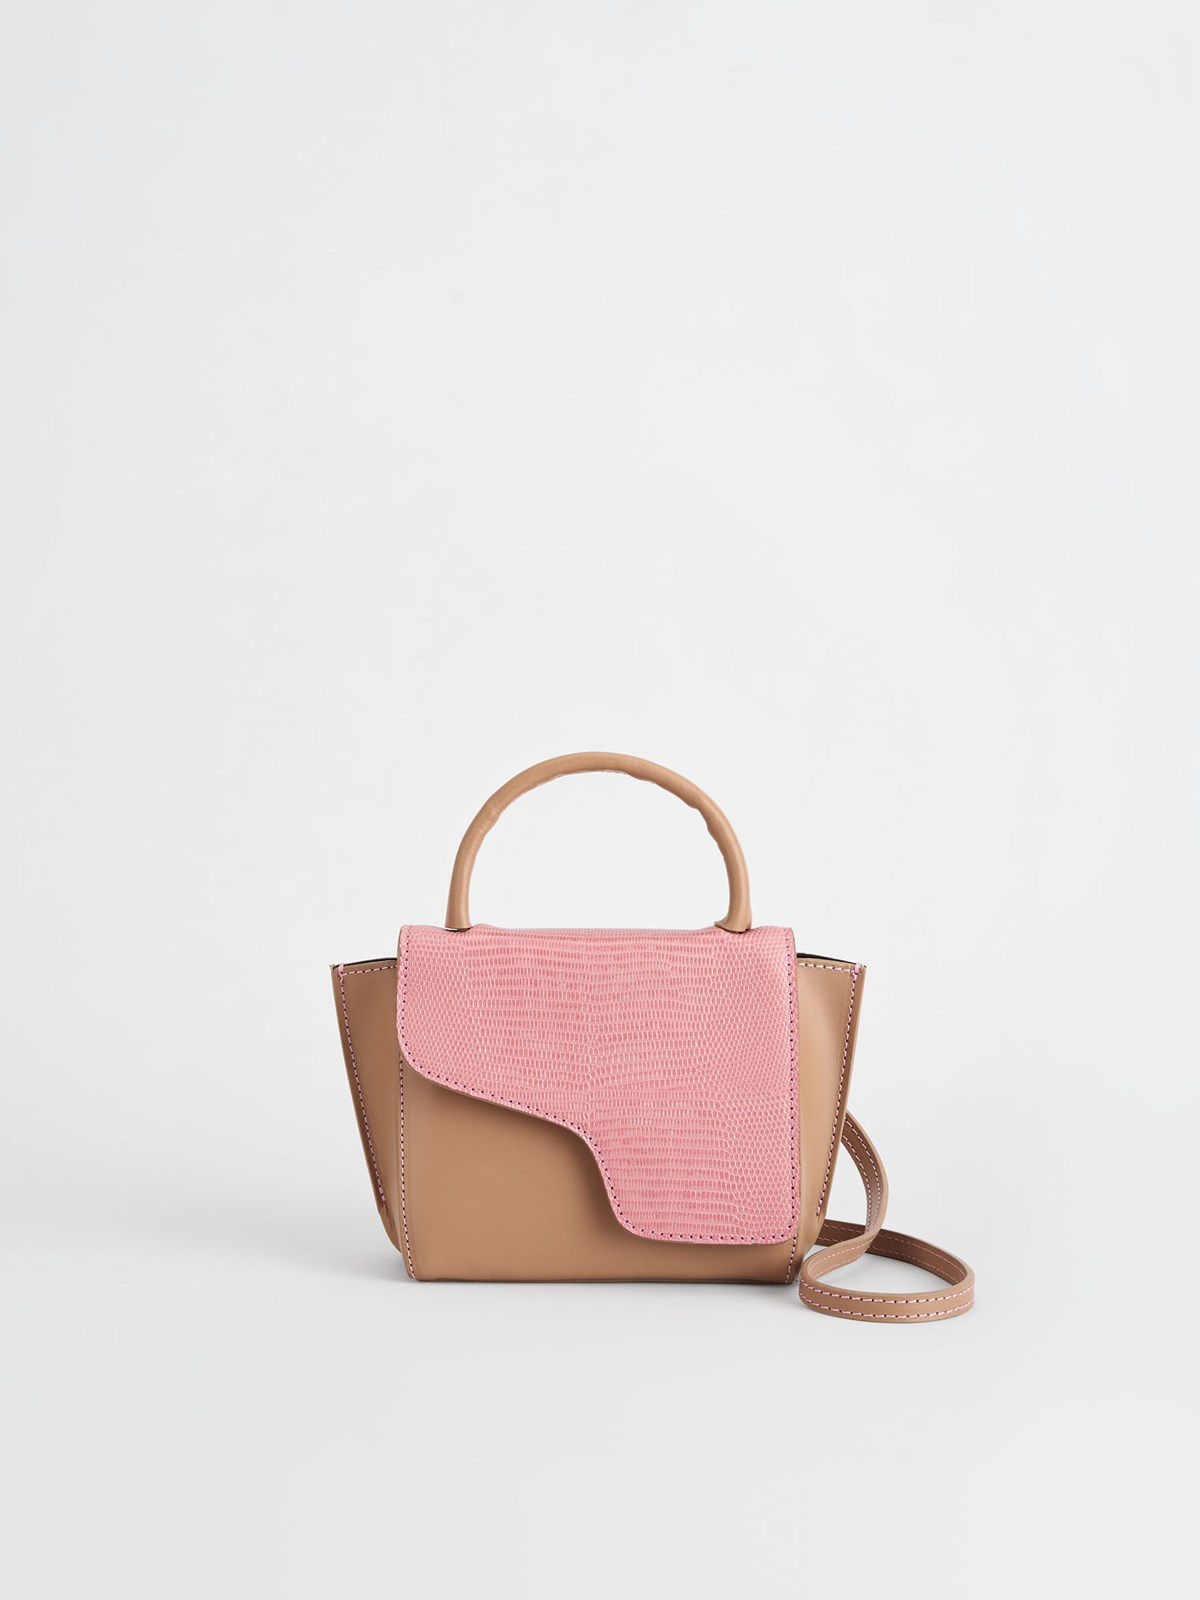 Montalcino Candy Pink Mini handbag